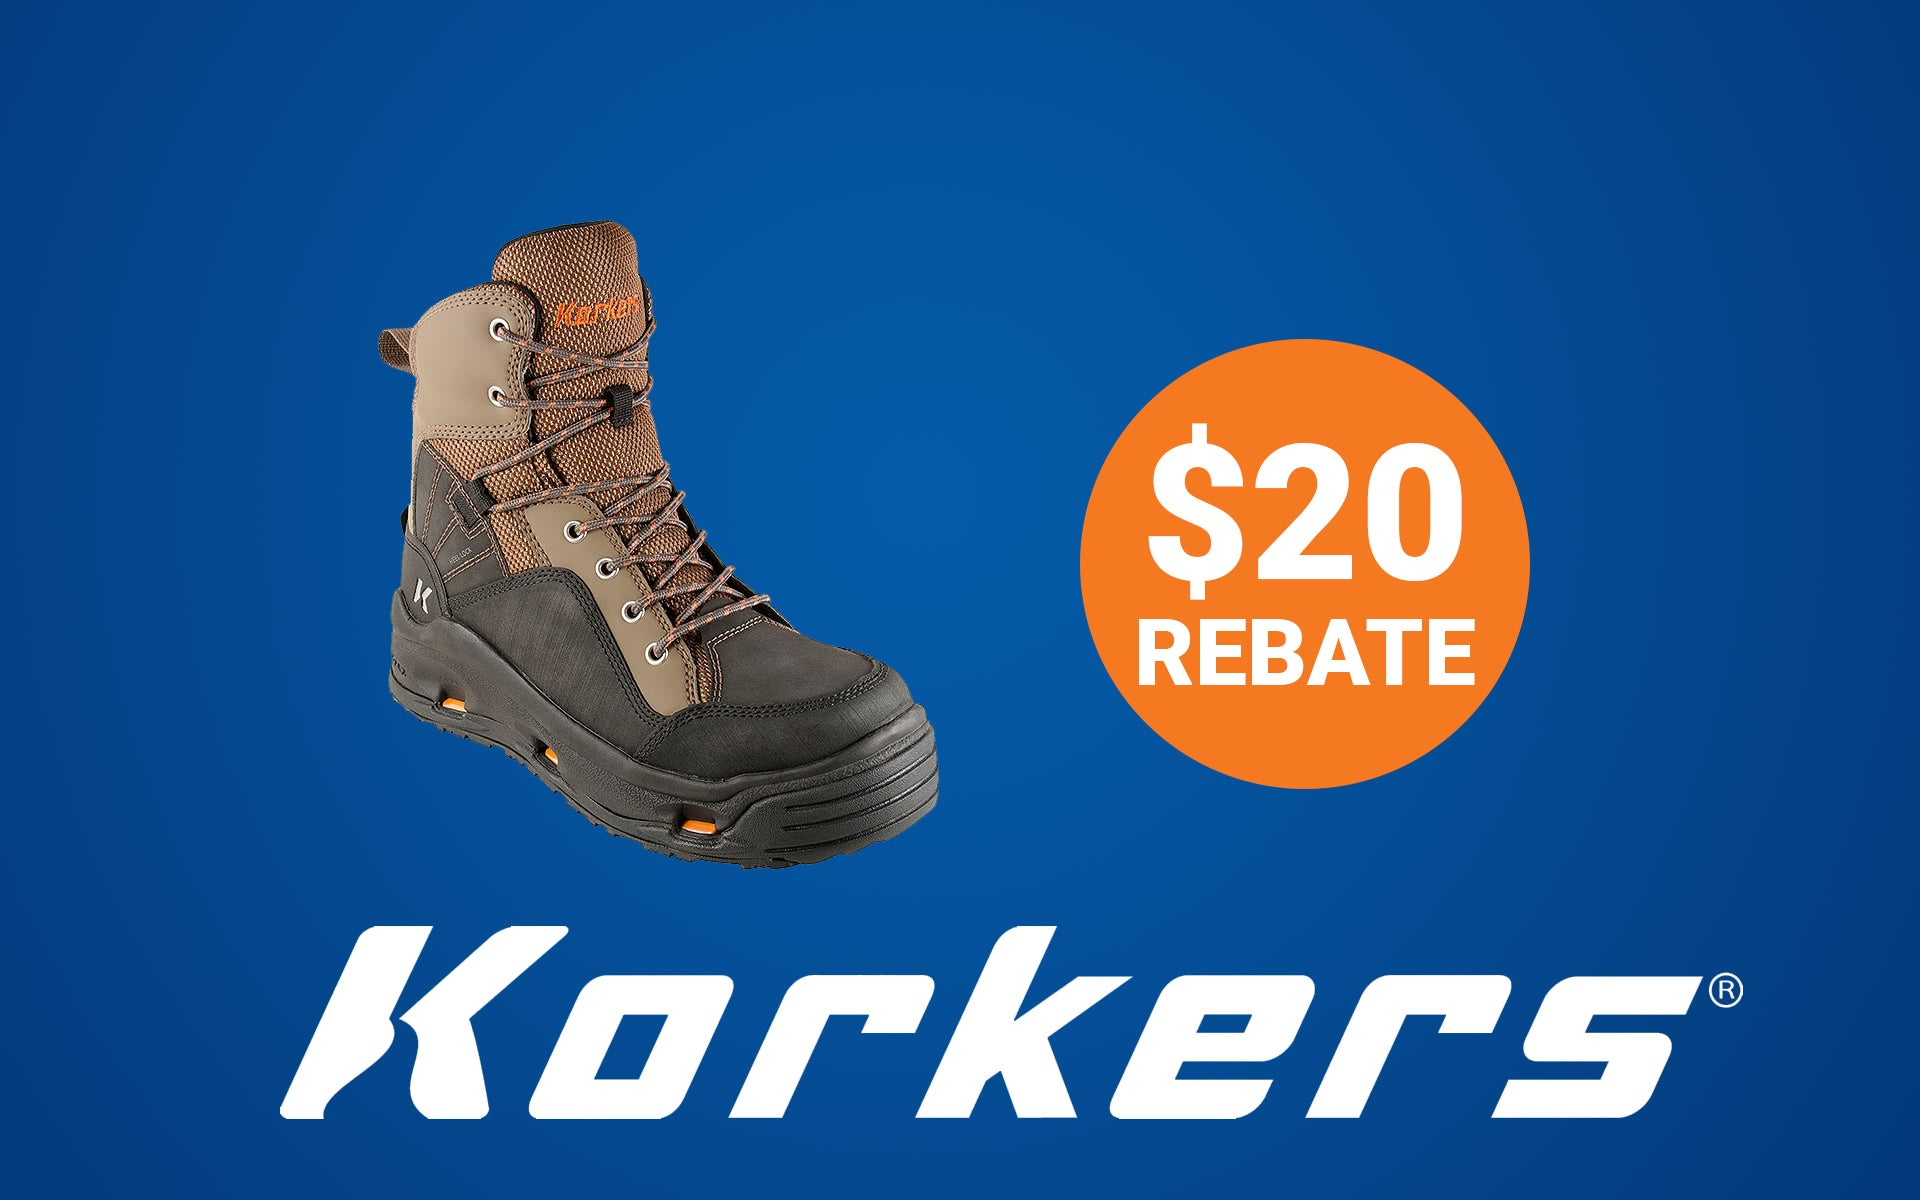 Korkers Rebate: $20 back for the month of March 2019